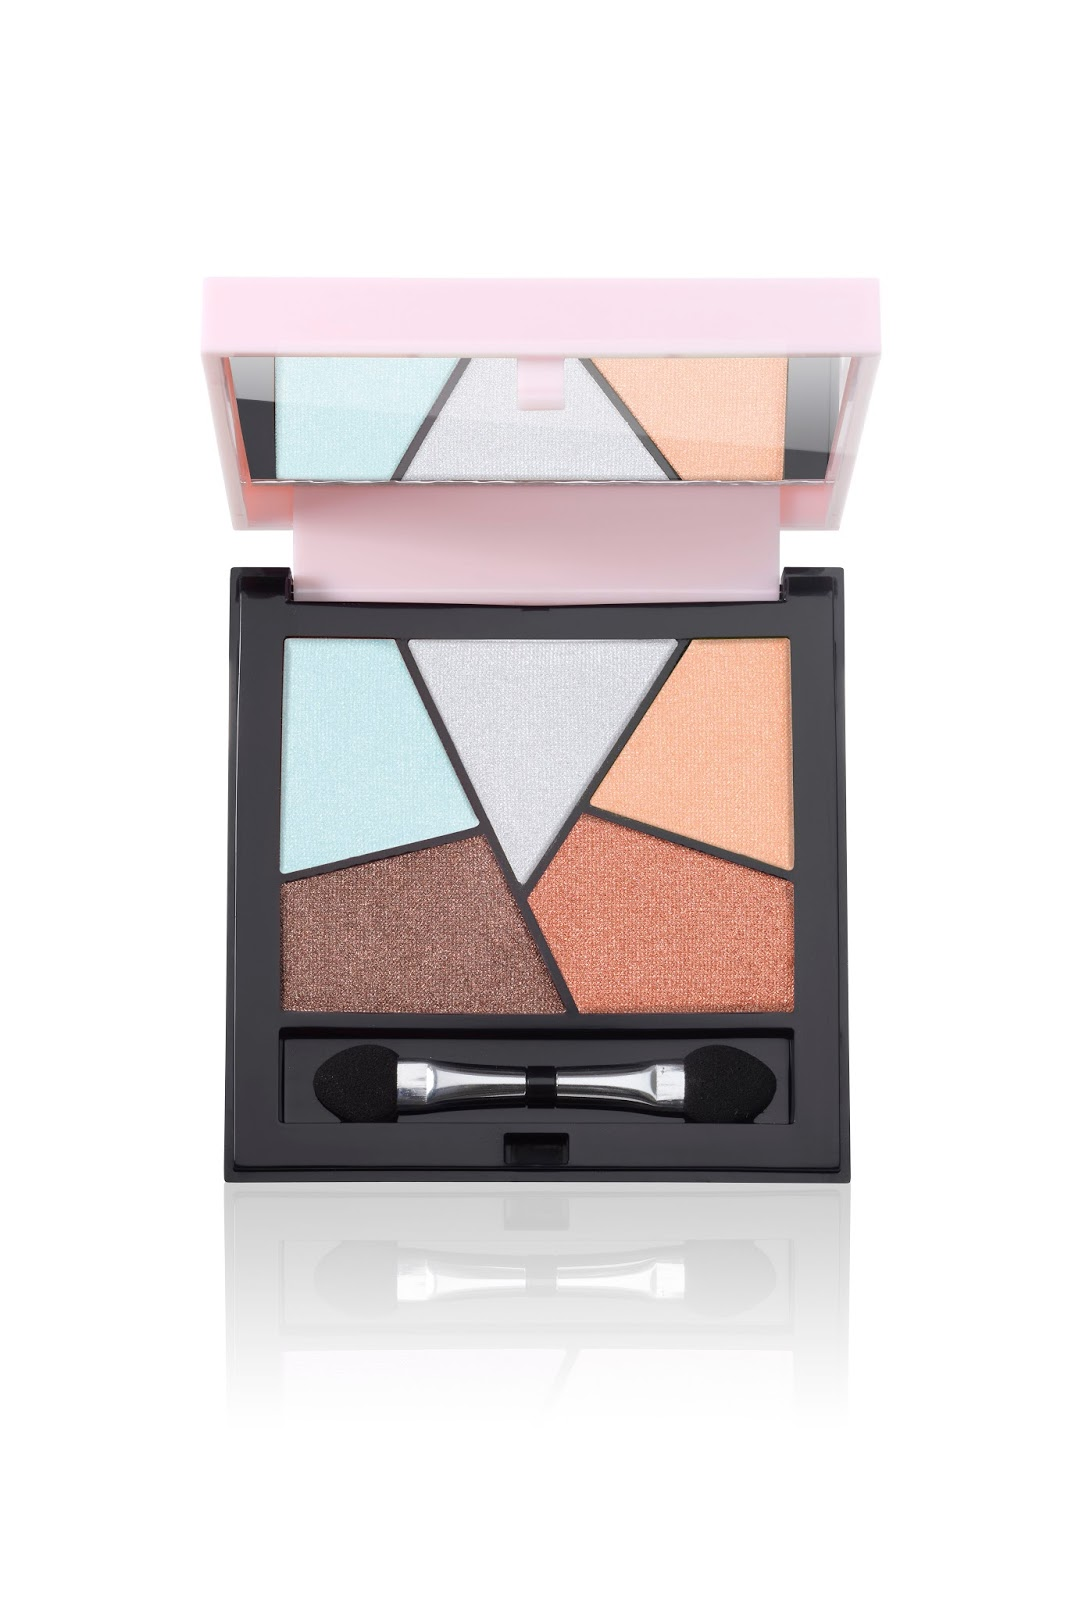 pupa Graphic Eyeshadow Palette 002